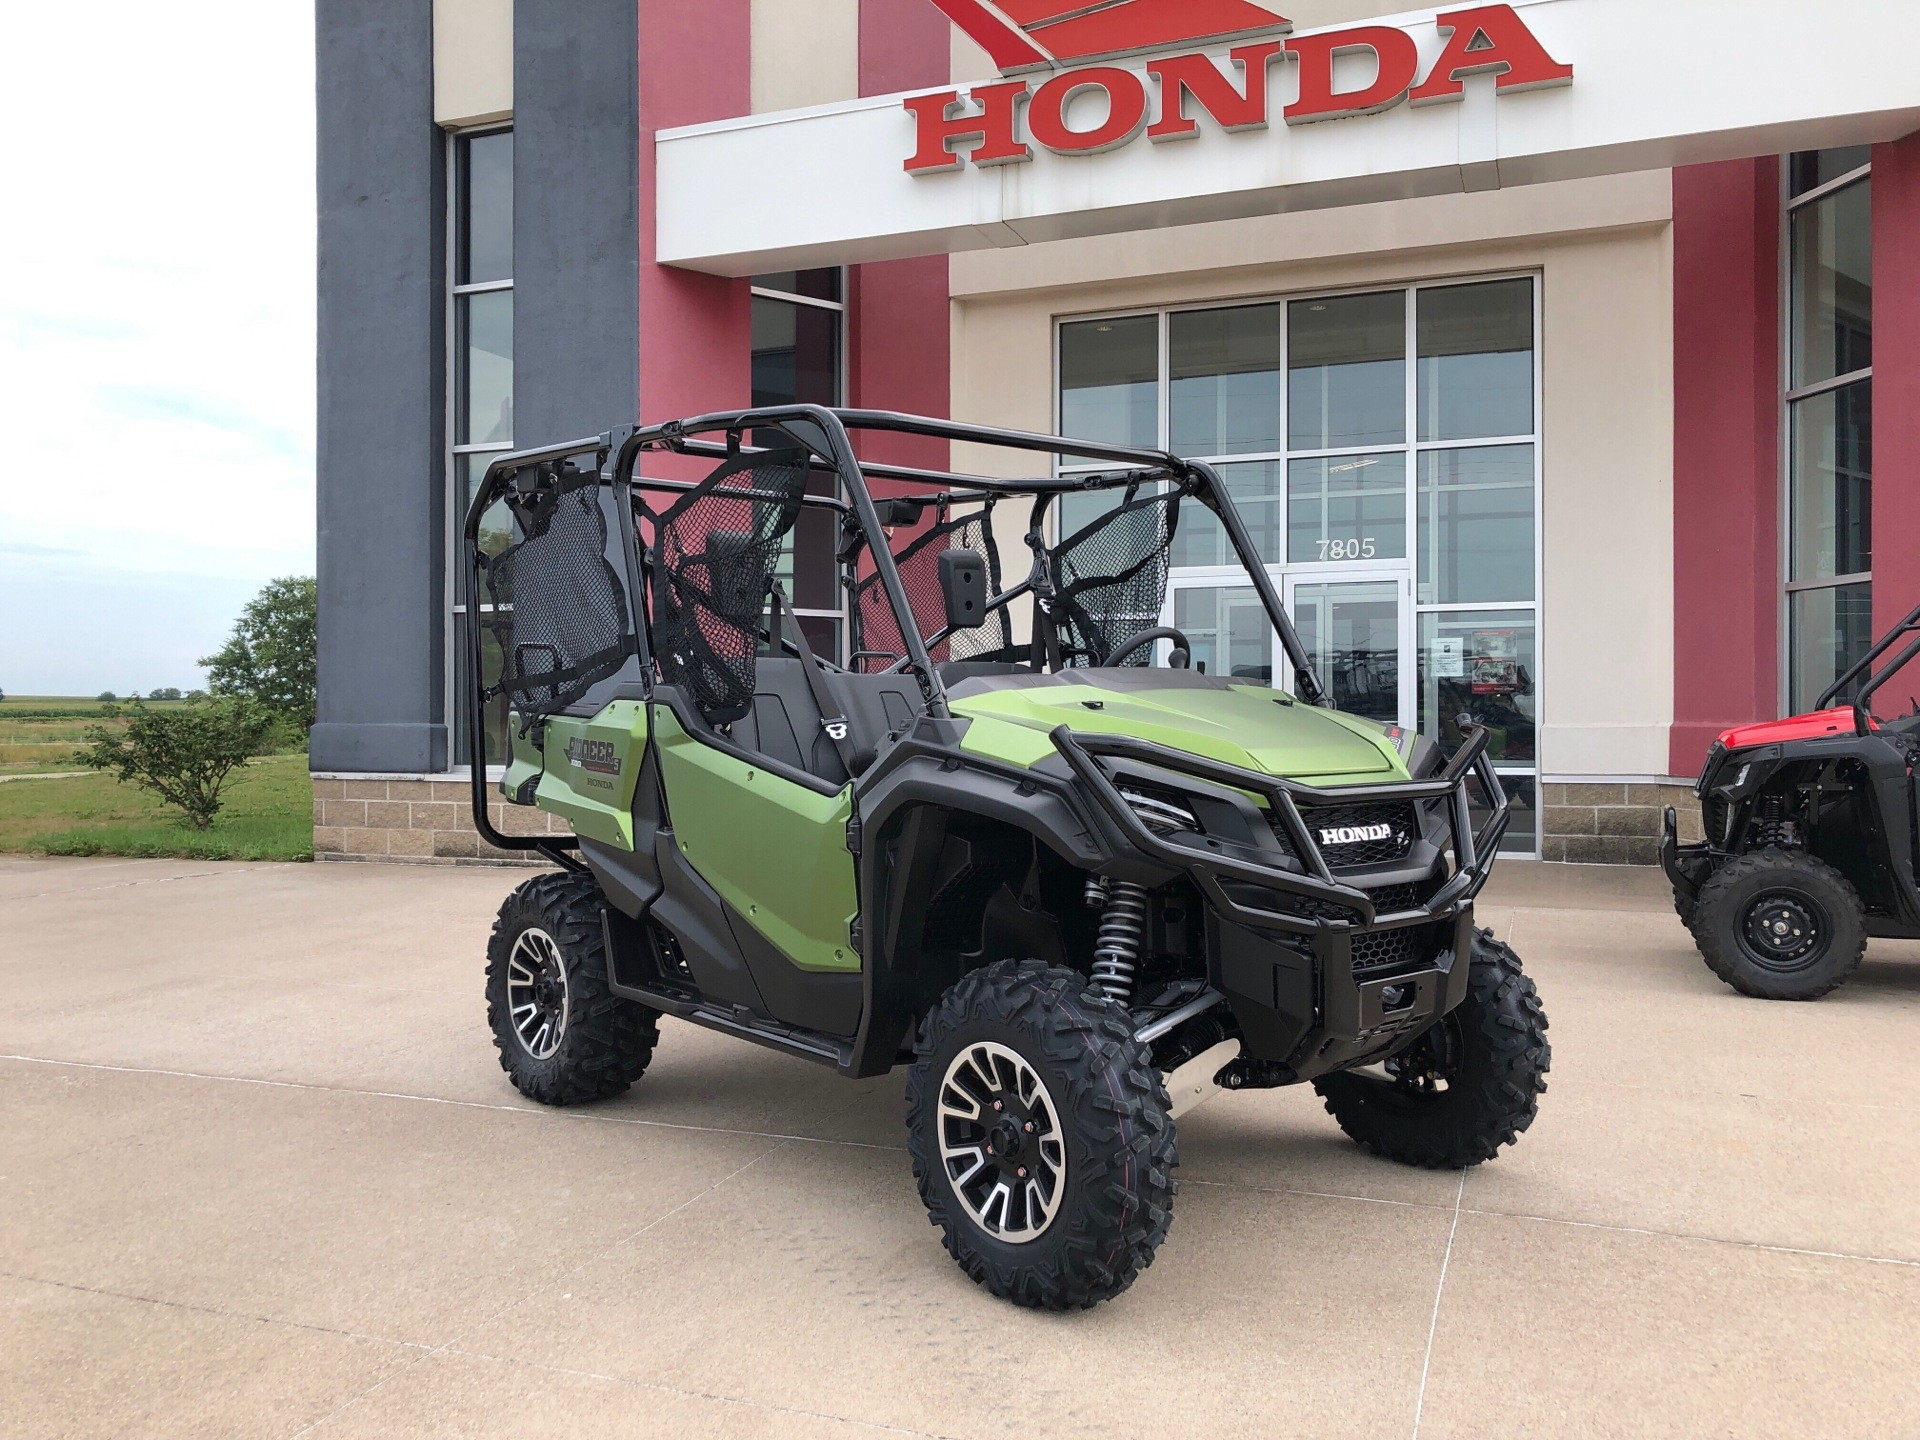 2020 Honda Pioneer 1000-5 LE in Davenport, Iowa - Photo 2